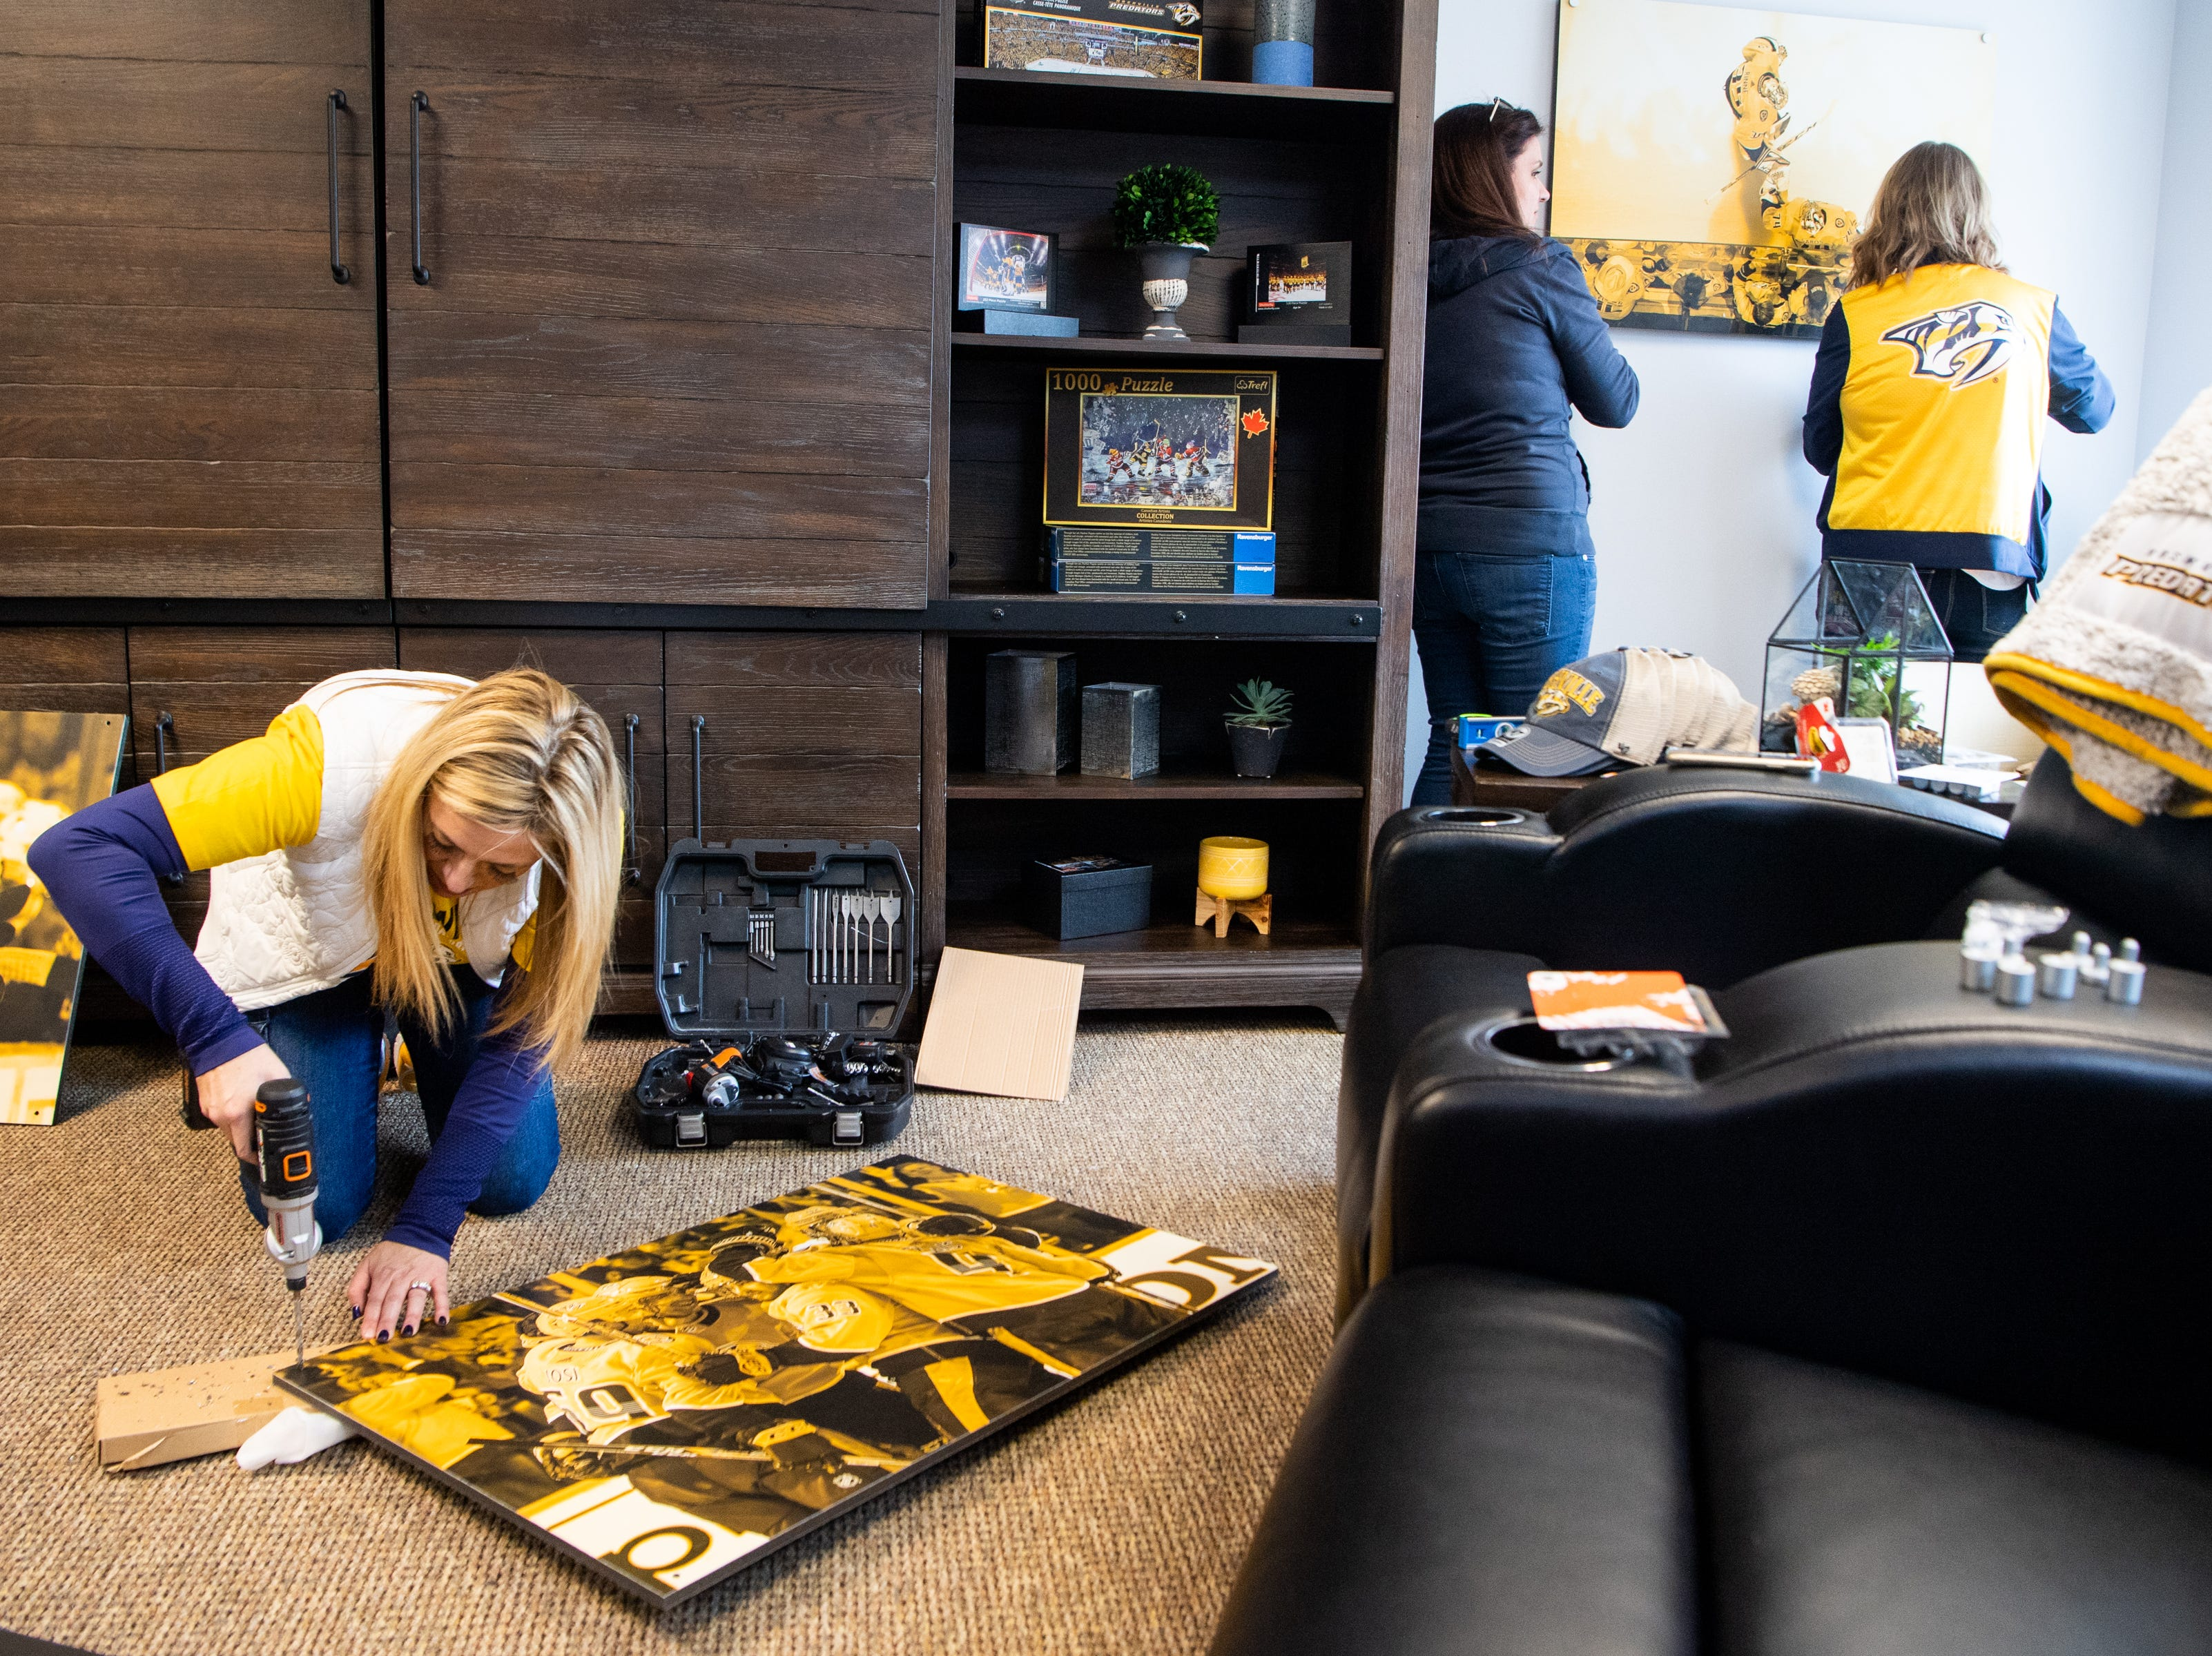 Kristen Laviolette drills holes in photos as part of a room makeover at Hope Lodge on March 12, 2019.